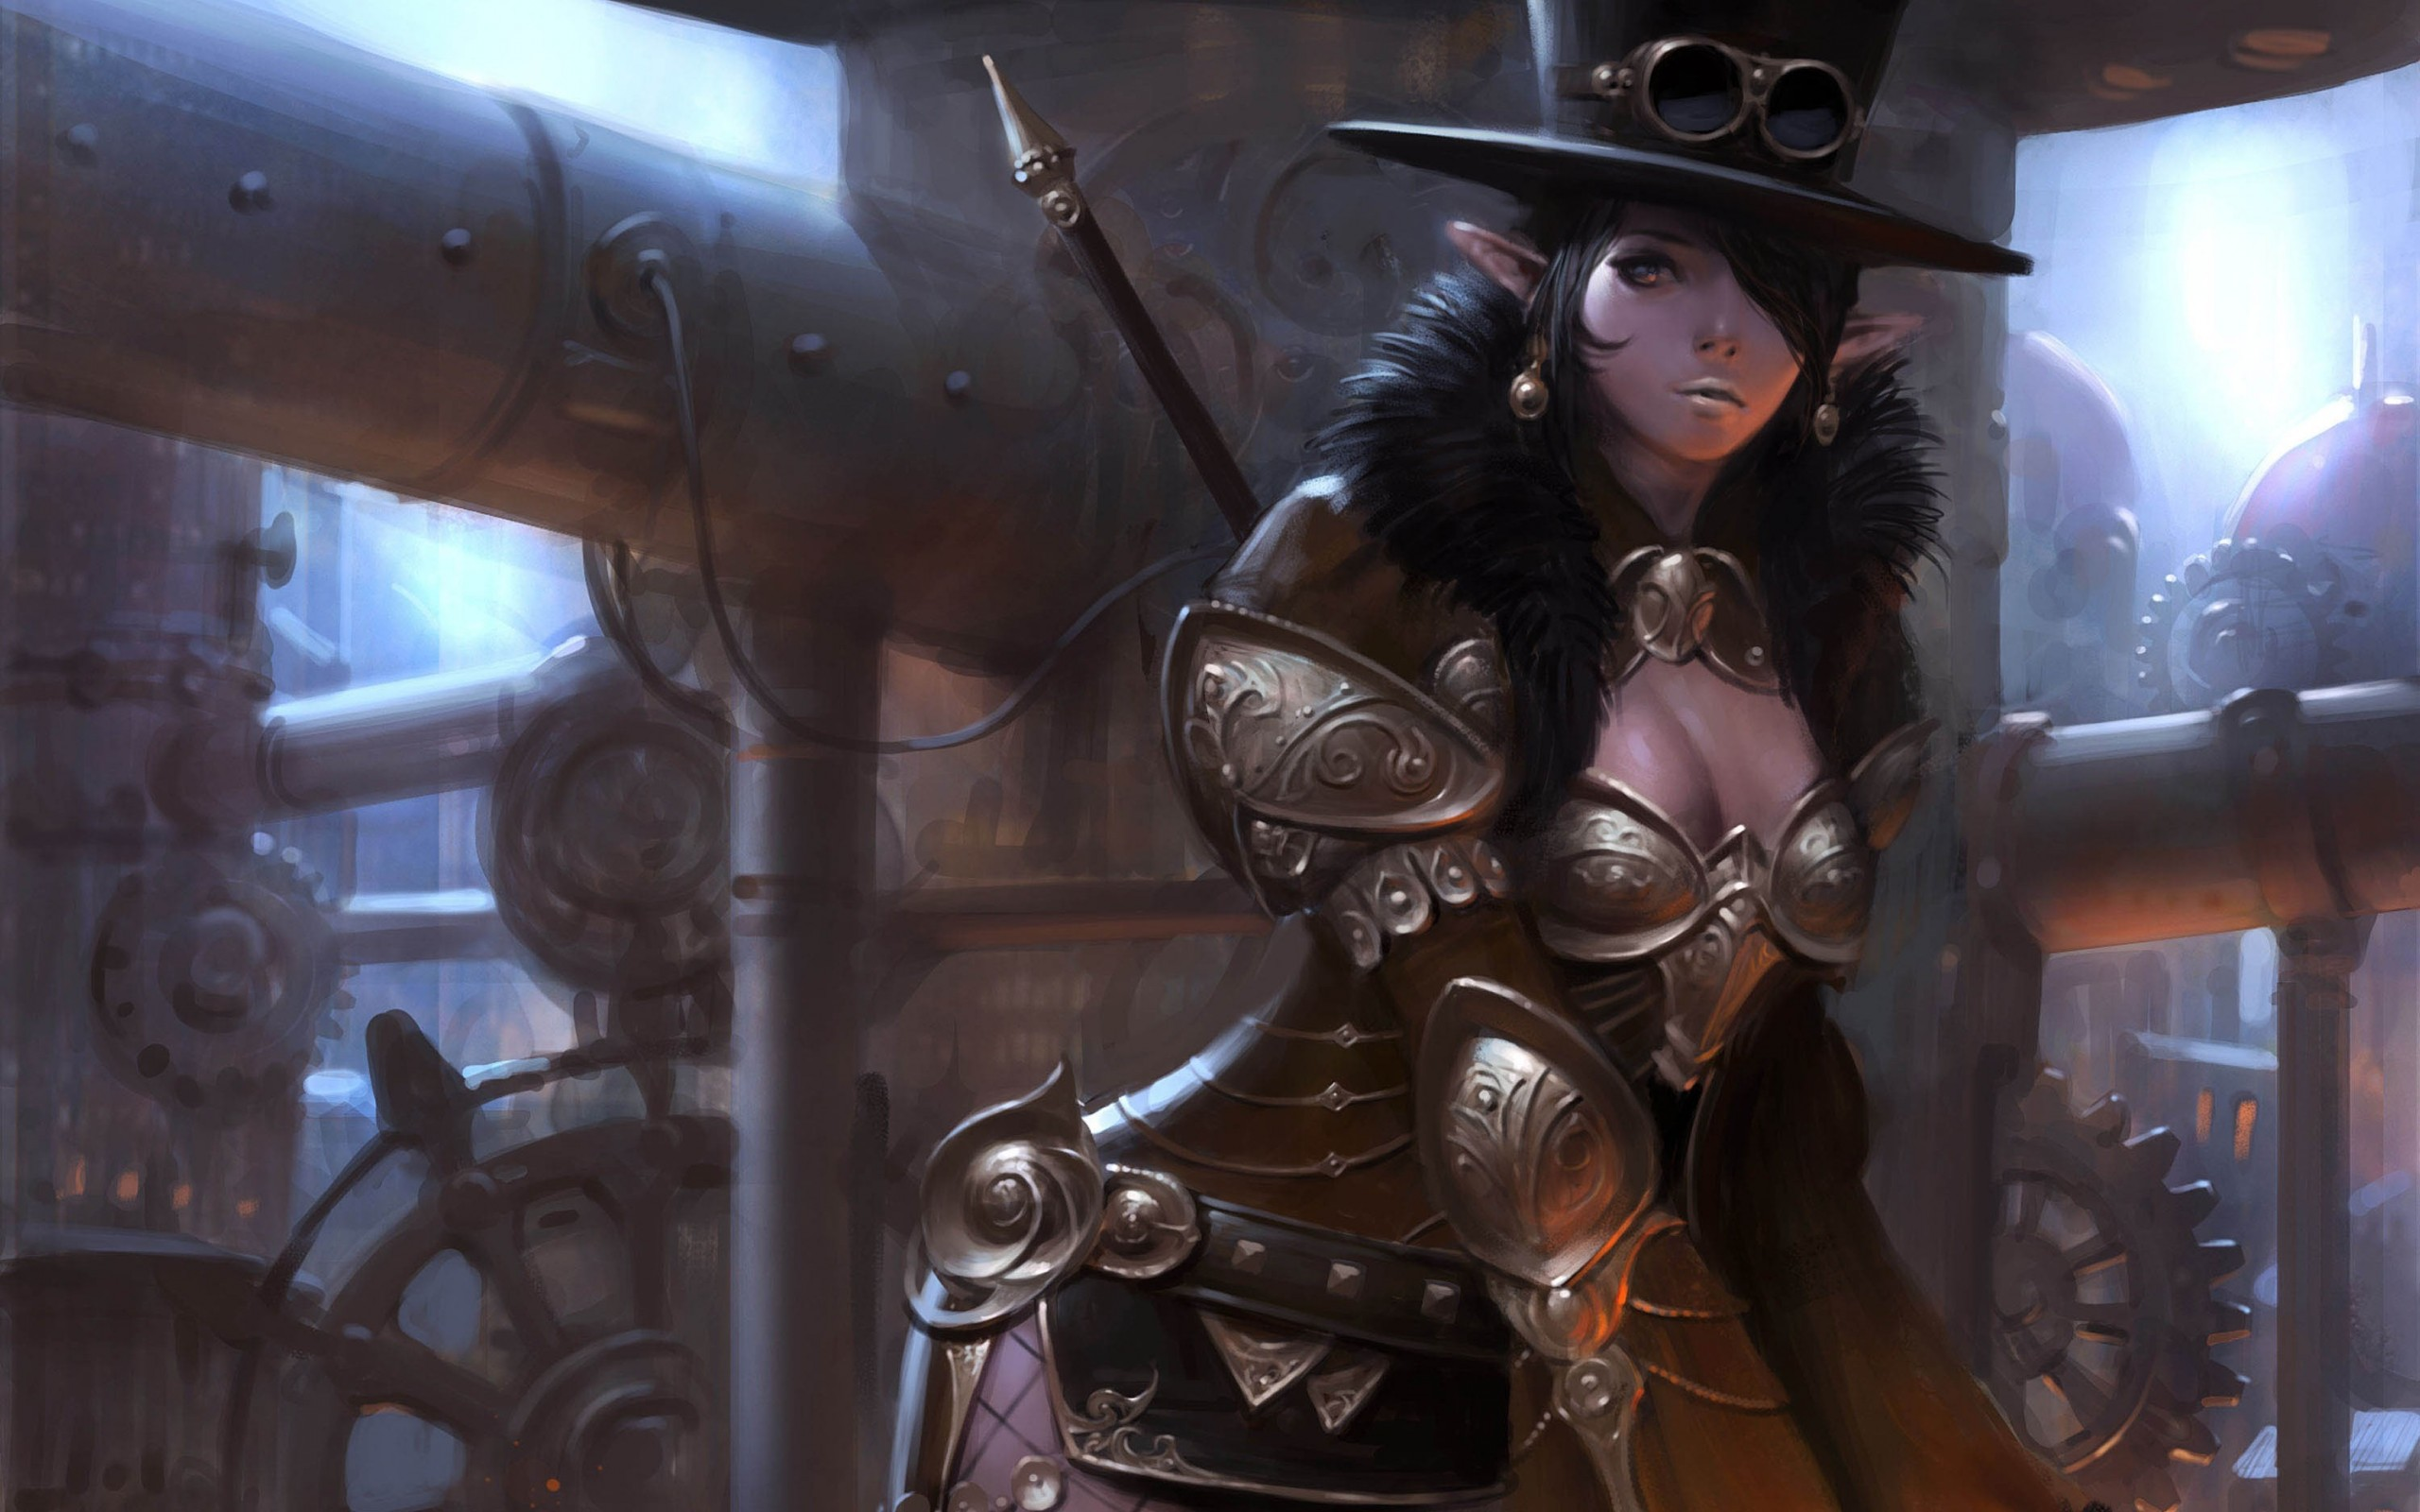 Steampunk Girl Wallpaper Art choi keun hoon girl elf 2560x1600